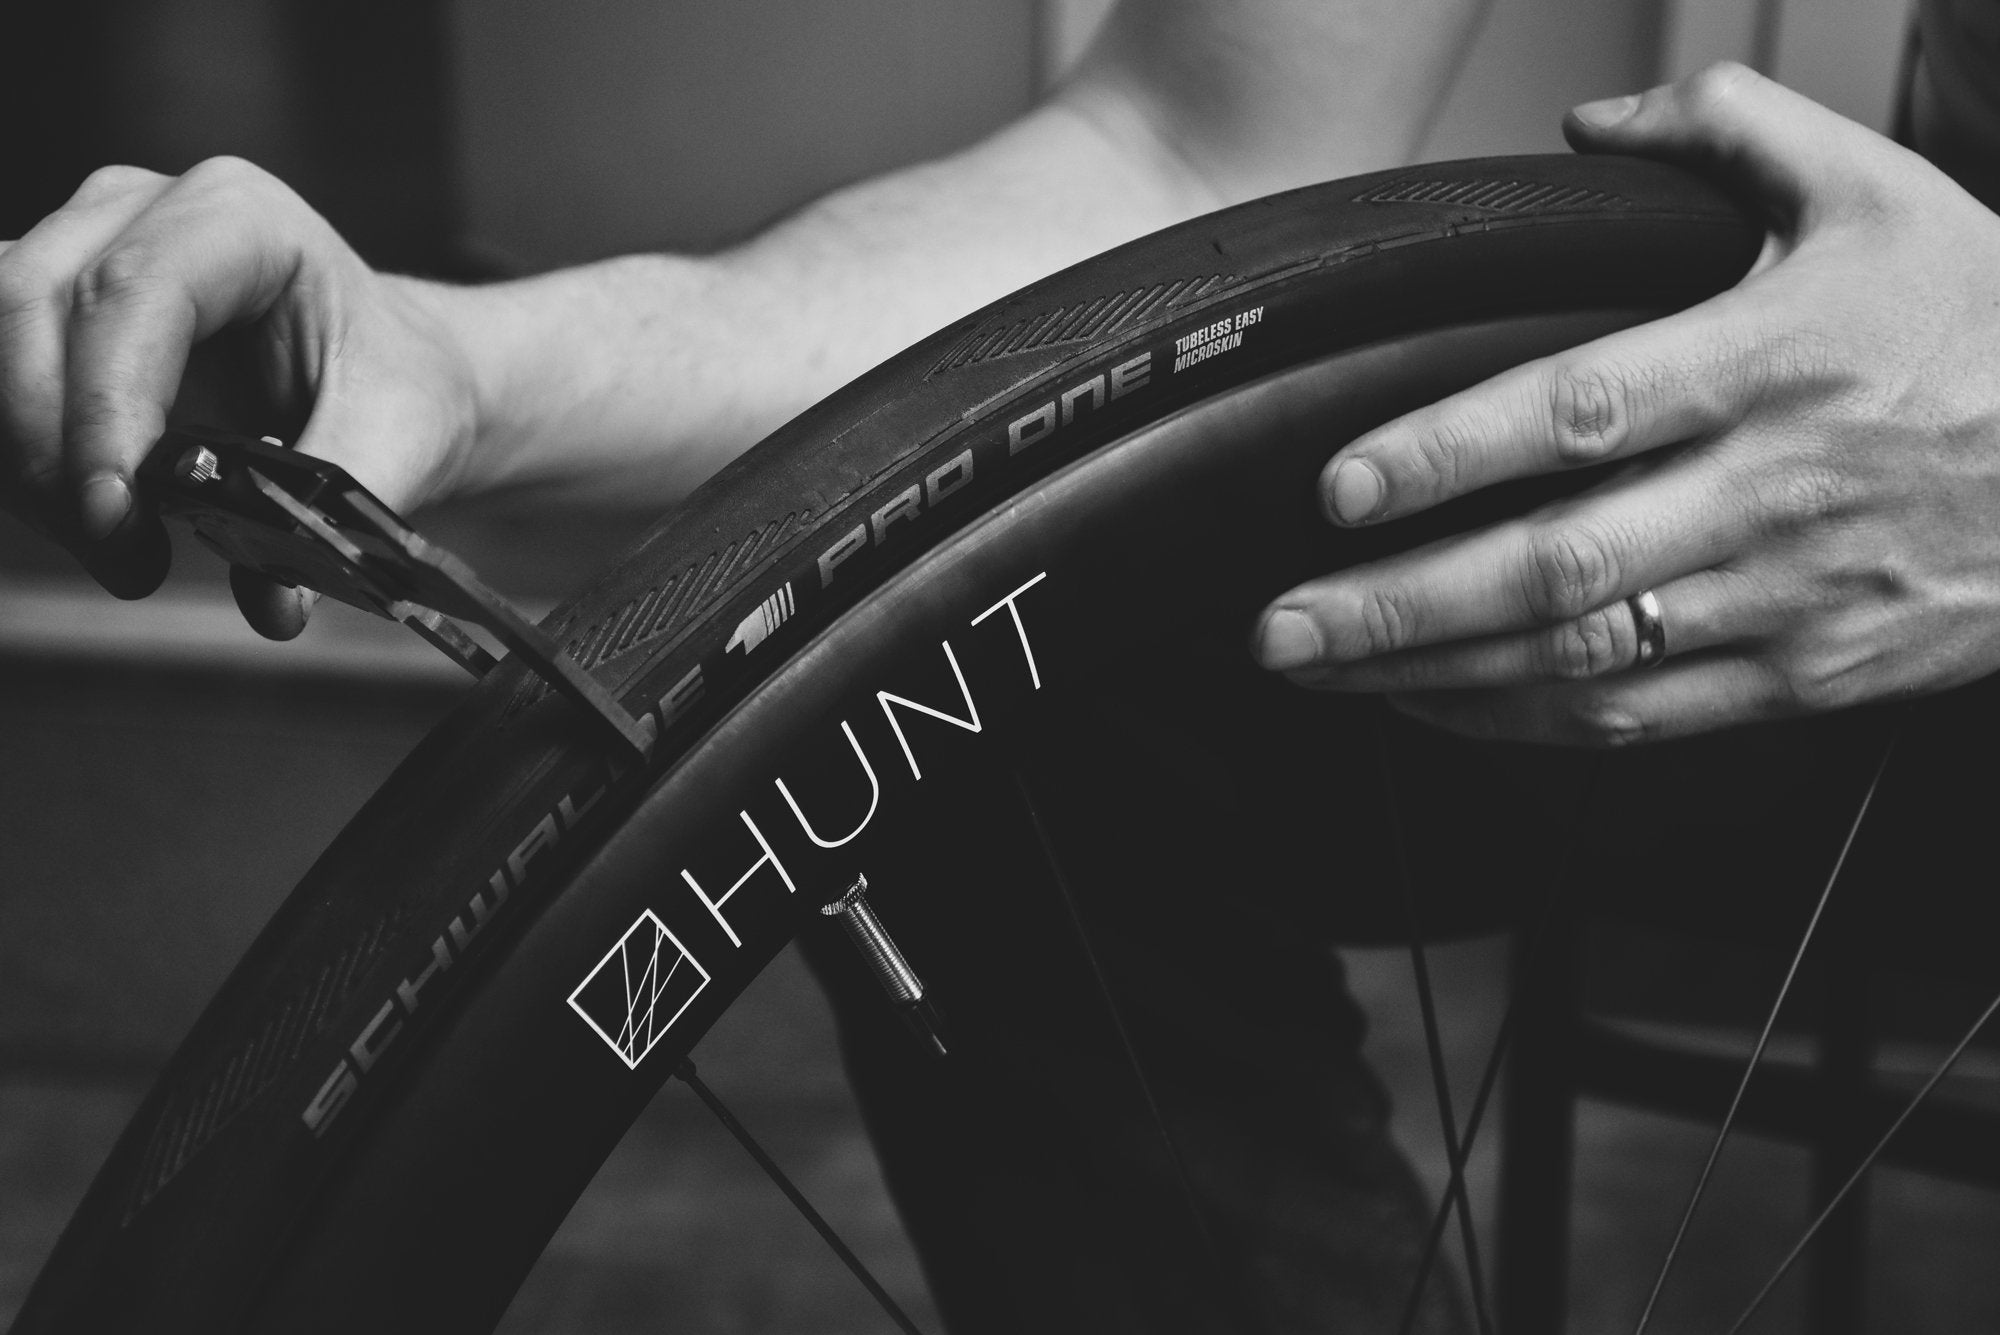 <h1>Tire Compatibility</h1><i>Optimised aerodynamically for a Schwalbe Pro One 28c, but compatible with any tubeless or clincher tire from 23 up to 45c.</i>